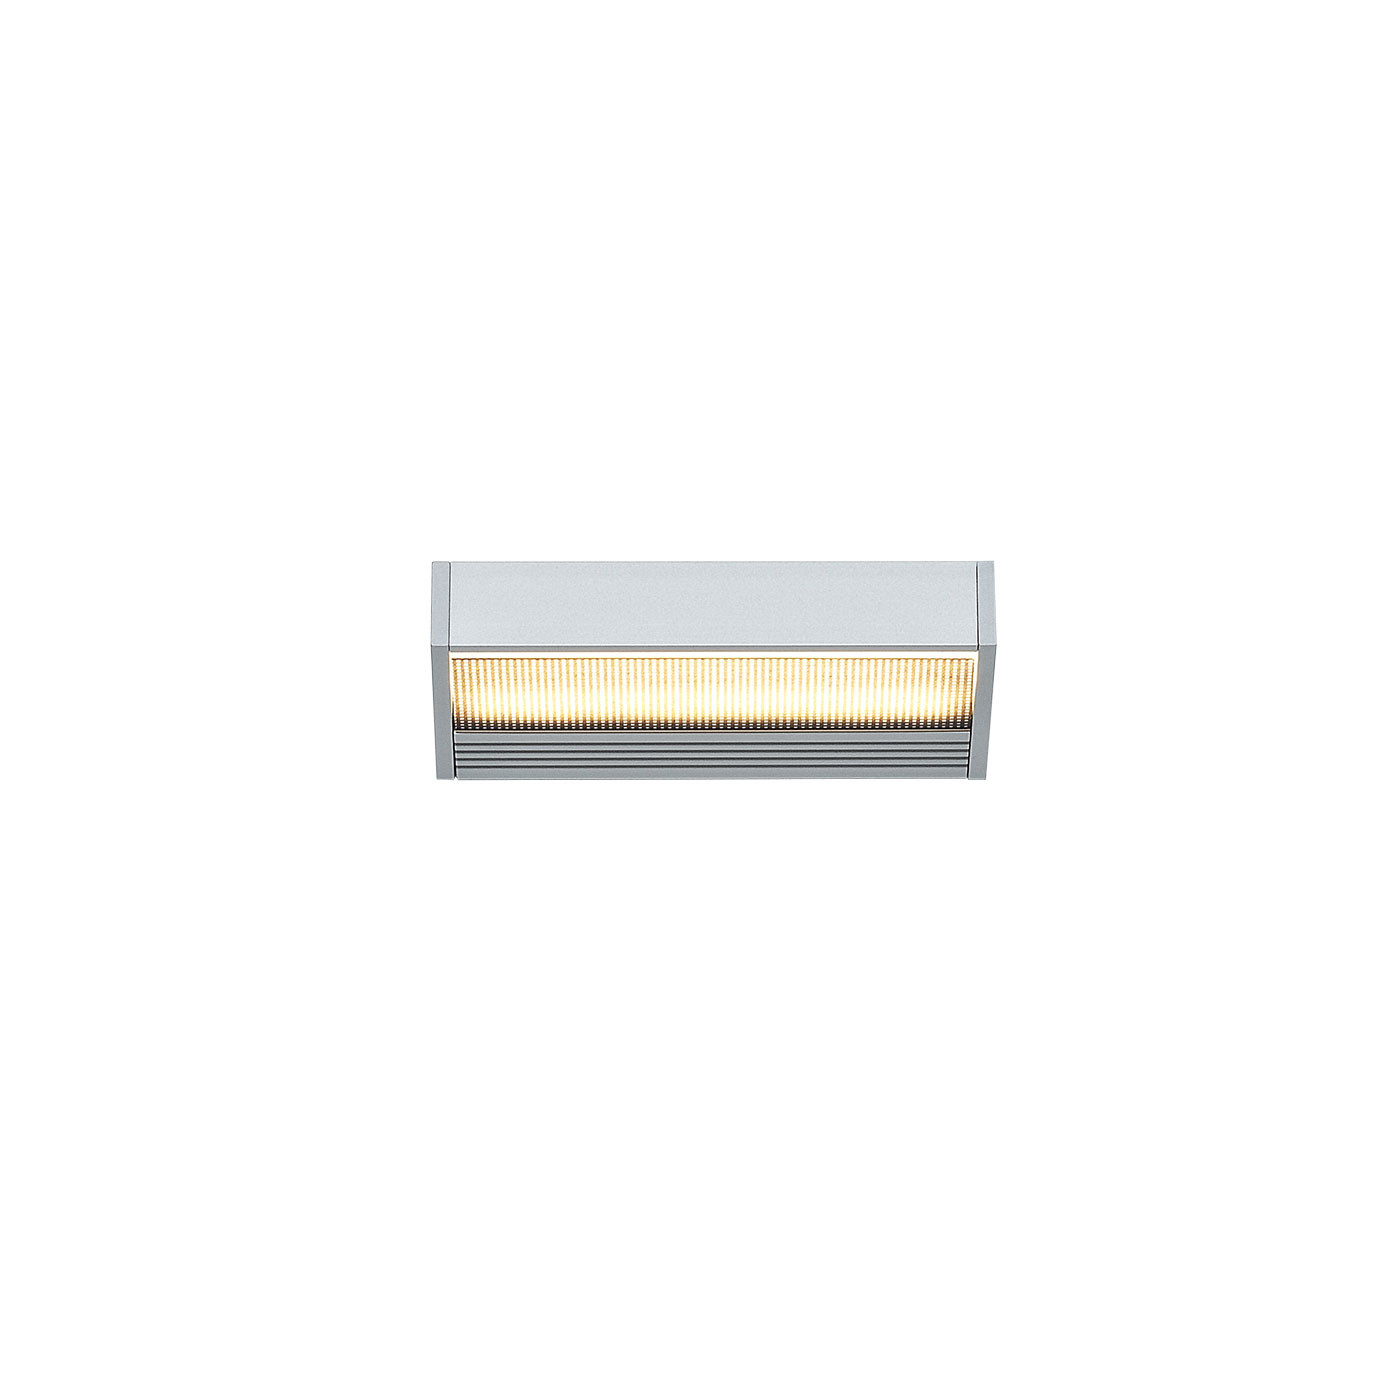 Serien Lighting SML² Wall 150, 2700K